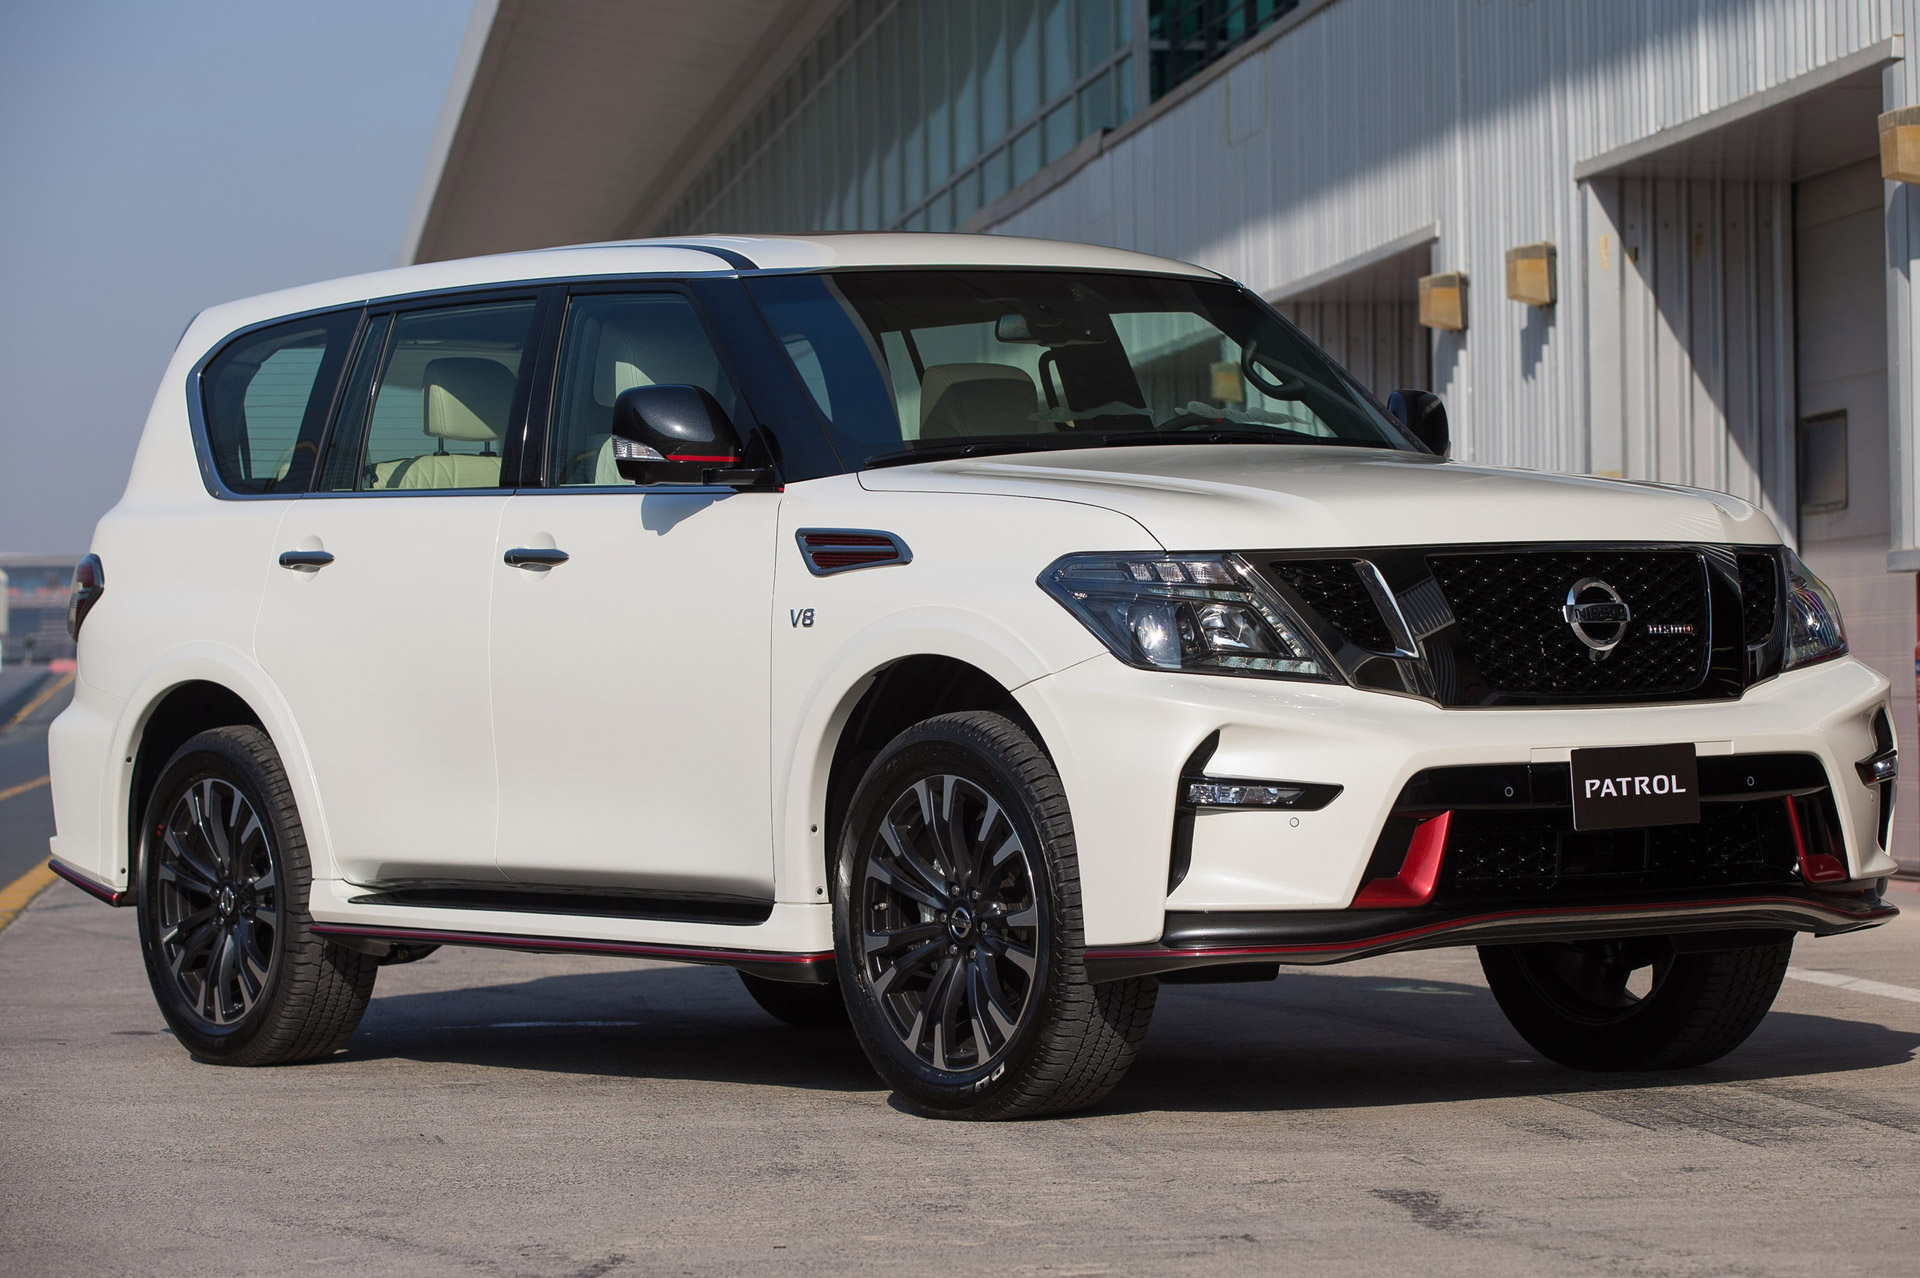 nissan patrol full size suv gets nismo treatment. Black Bedroom Furniture Sets. Home Design Ideas